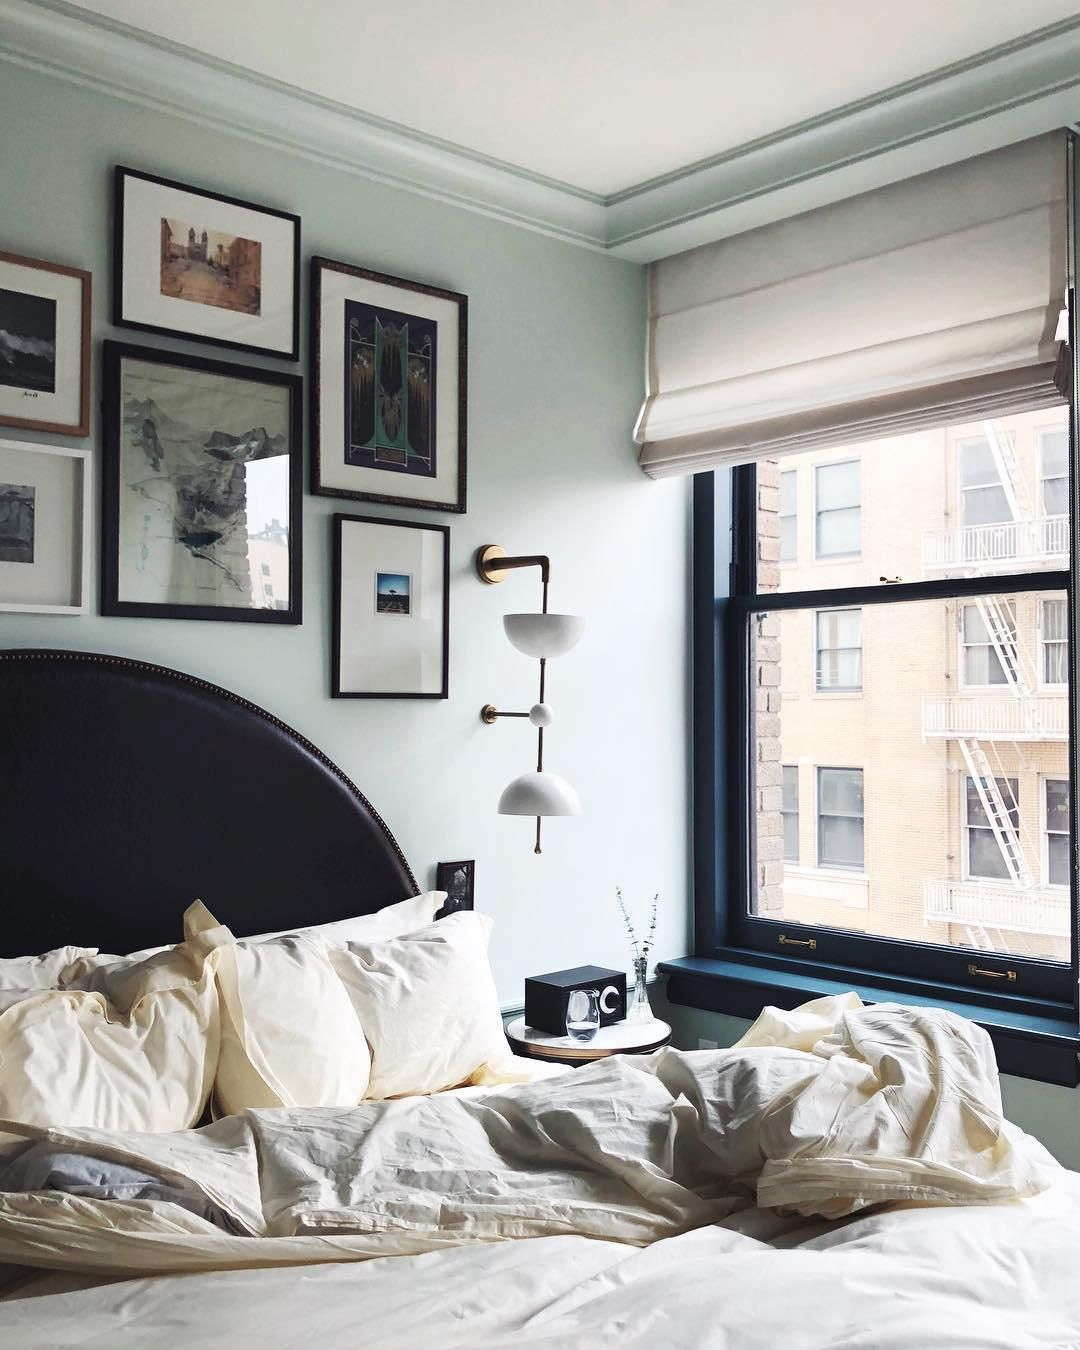 14 of the chicest los angeles hotels for bachelorette parties rh pinterest com hotel furniture for sale nigeria hotel decorating furniture